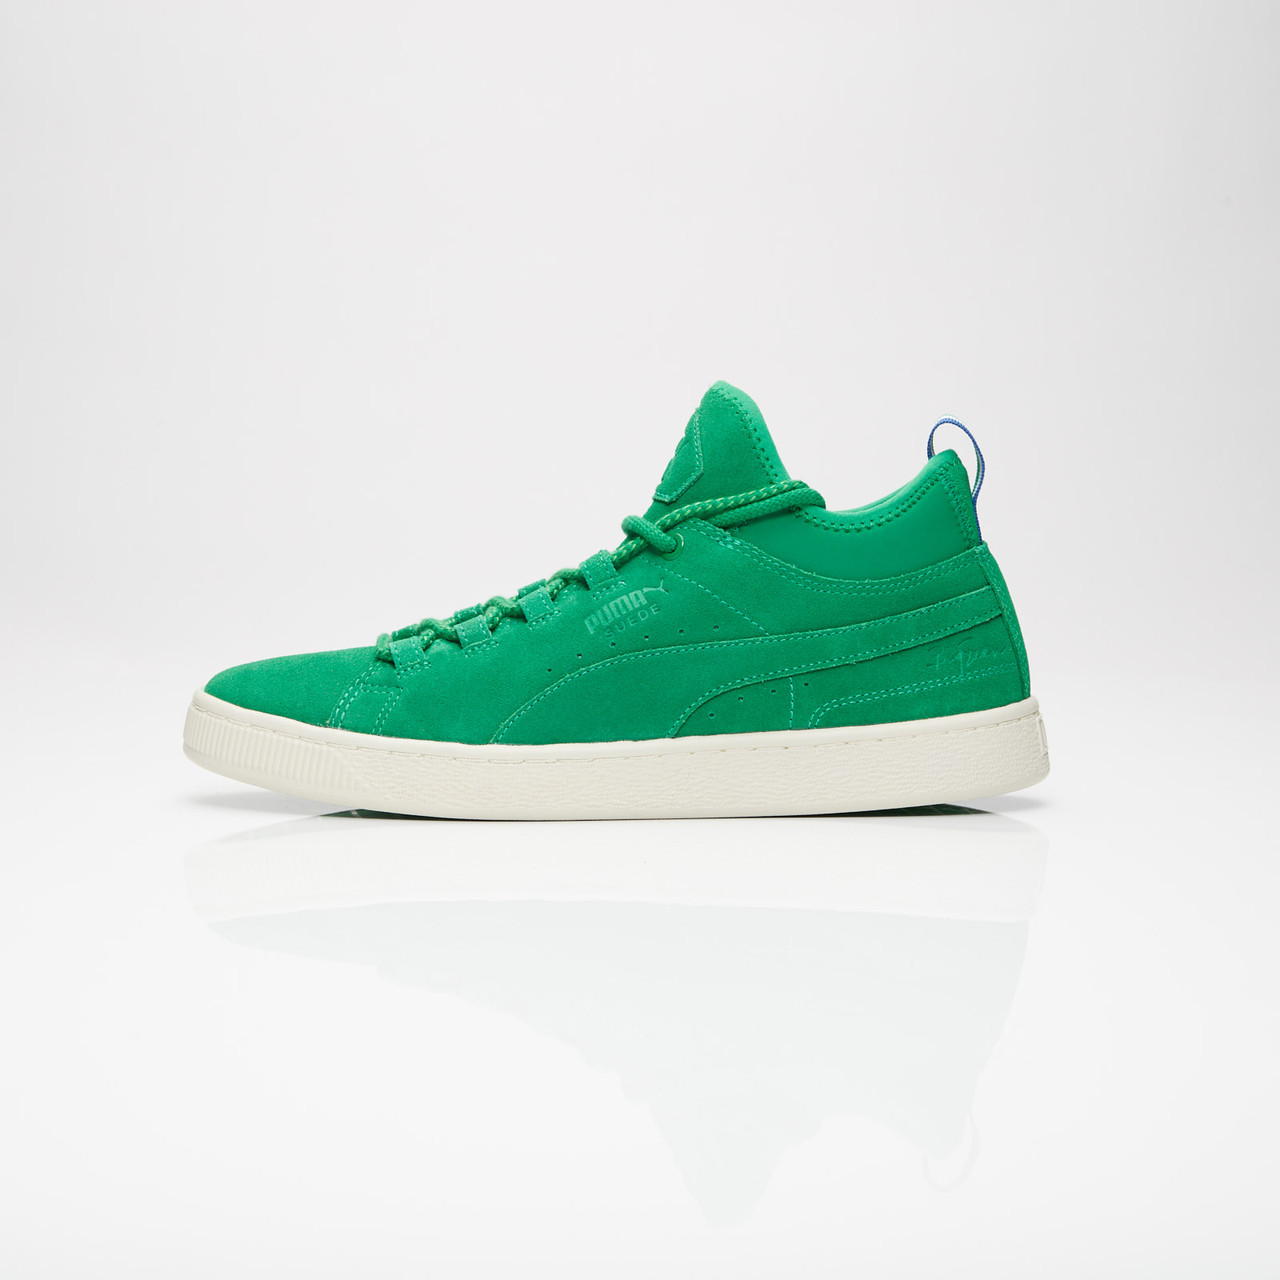 watch 08dfc d3a78 Puma Suede Mid x BIG SEAN